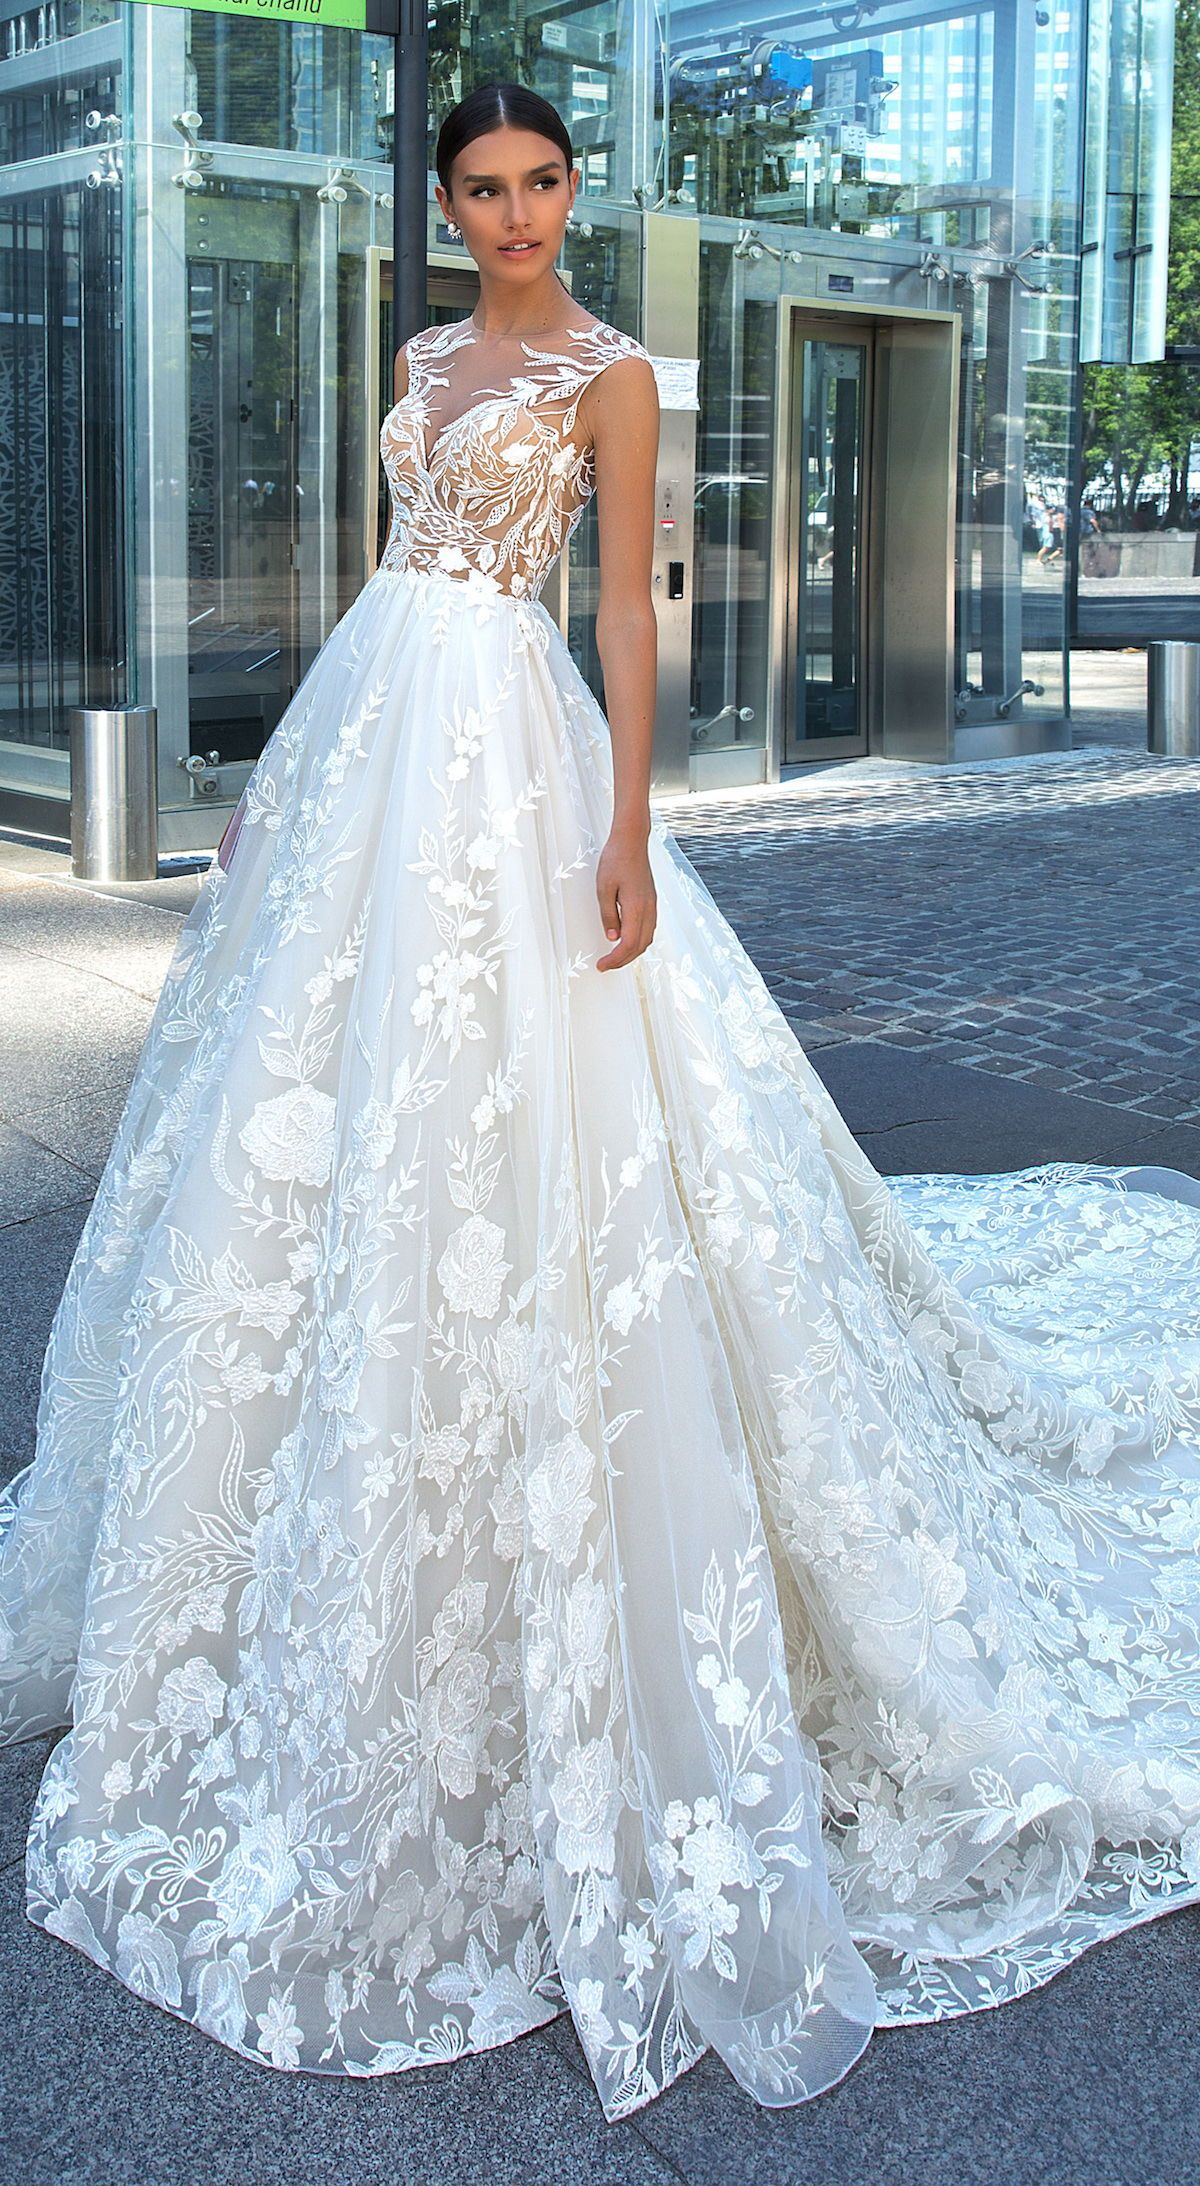 Ball Gown Wedding Dress By Crystal Design Princess A Line Bridal Gown With Cap Sleeve L Ball Gown Wedding Dress Wedding Dresses Lace Ballgown Wedding Dresses [ 2186 x 1200 Pixel ]